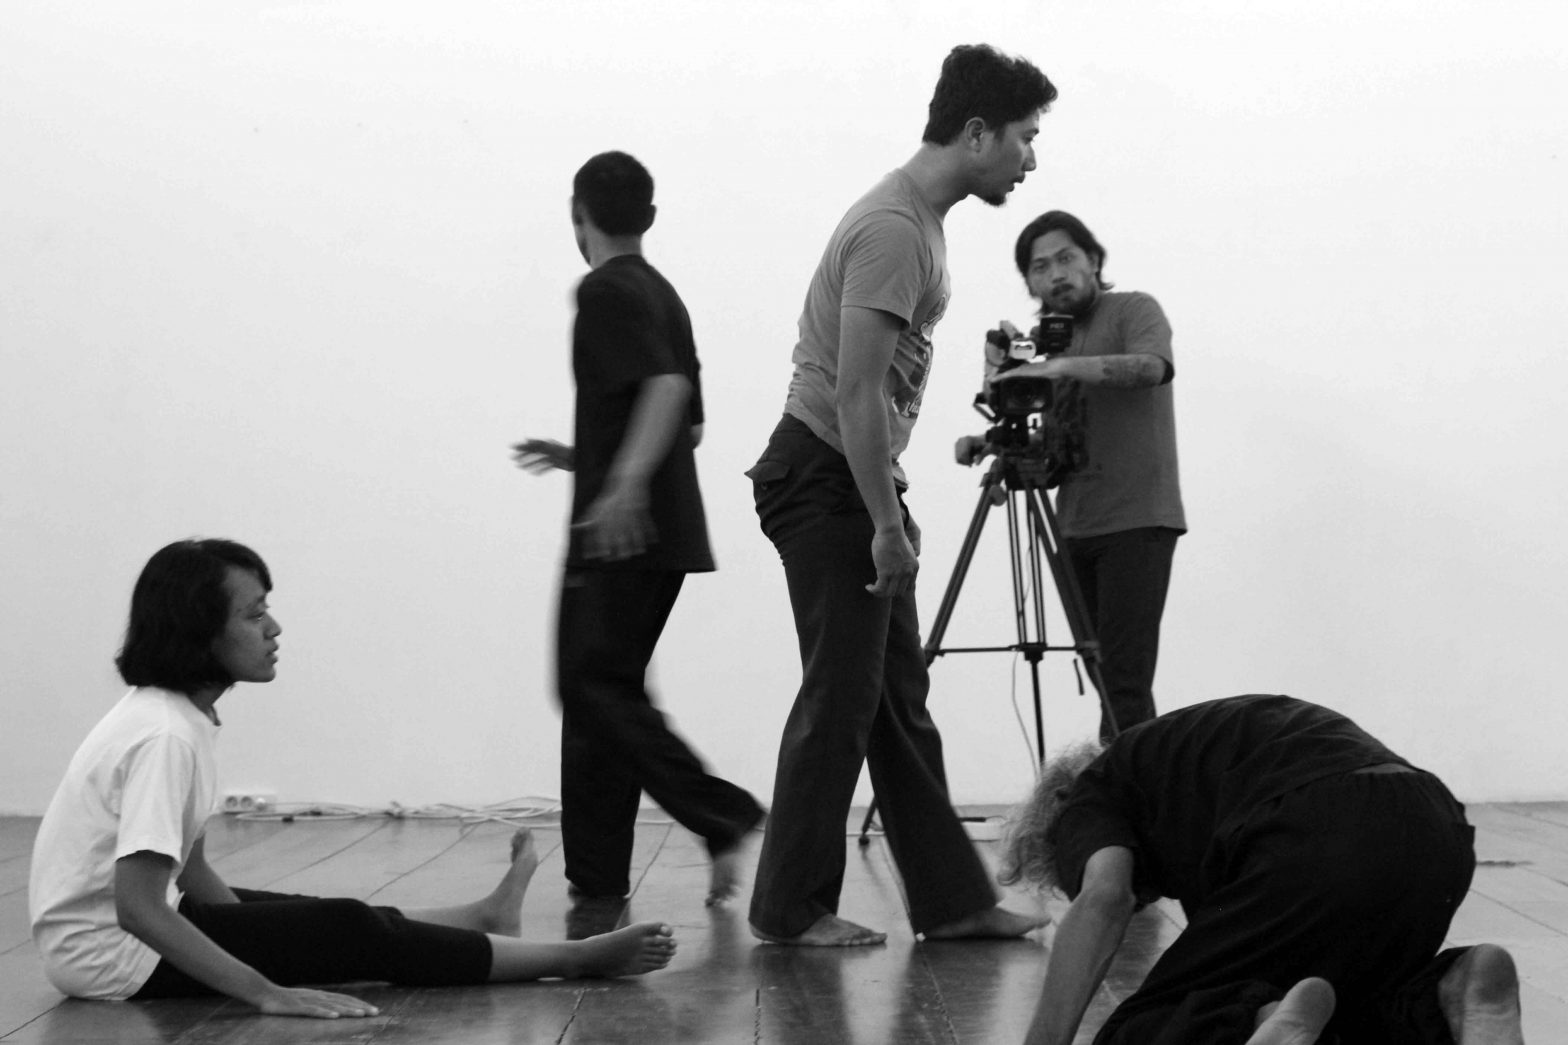 A cameraman watches performers in various movement poses.